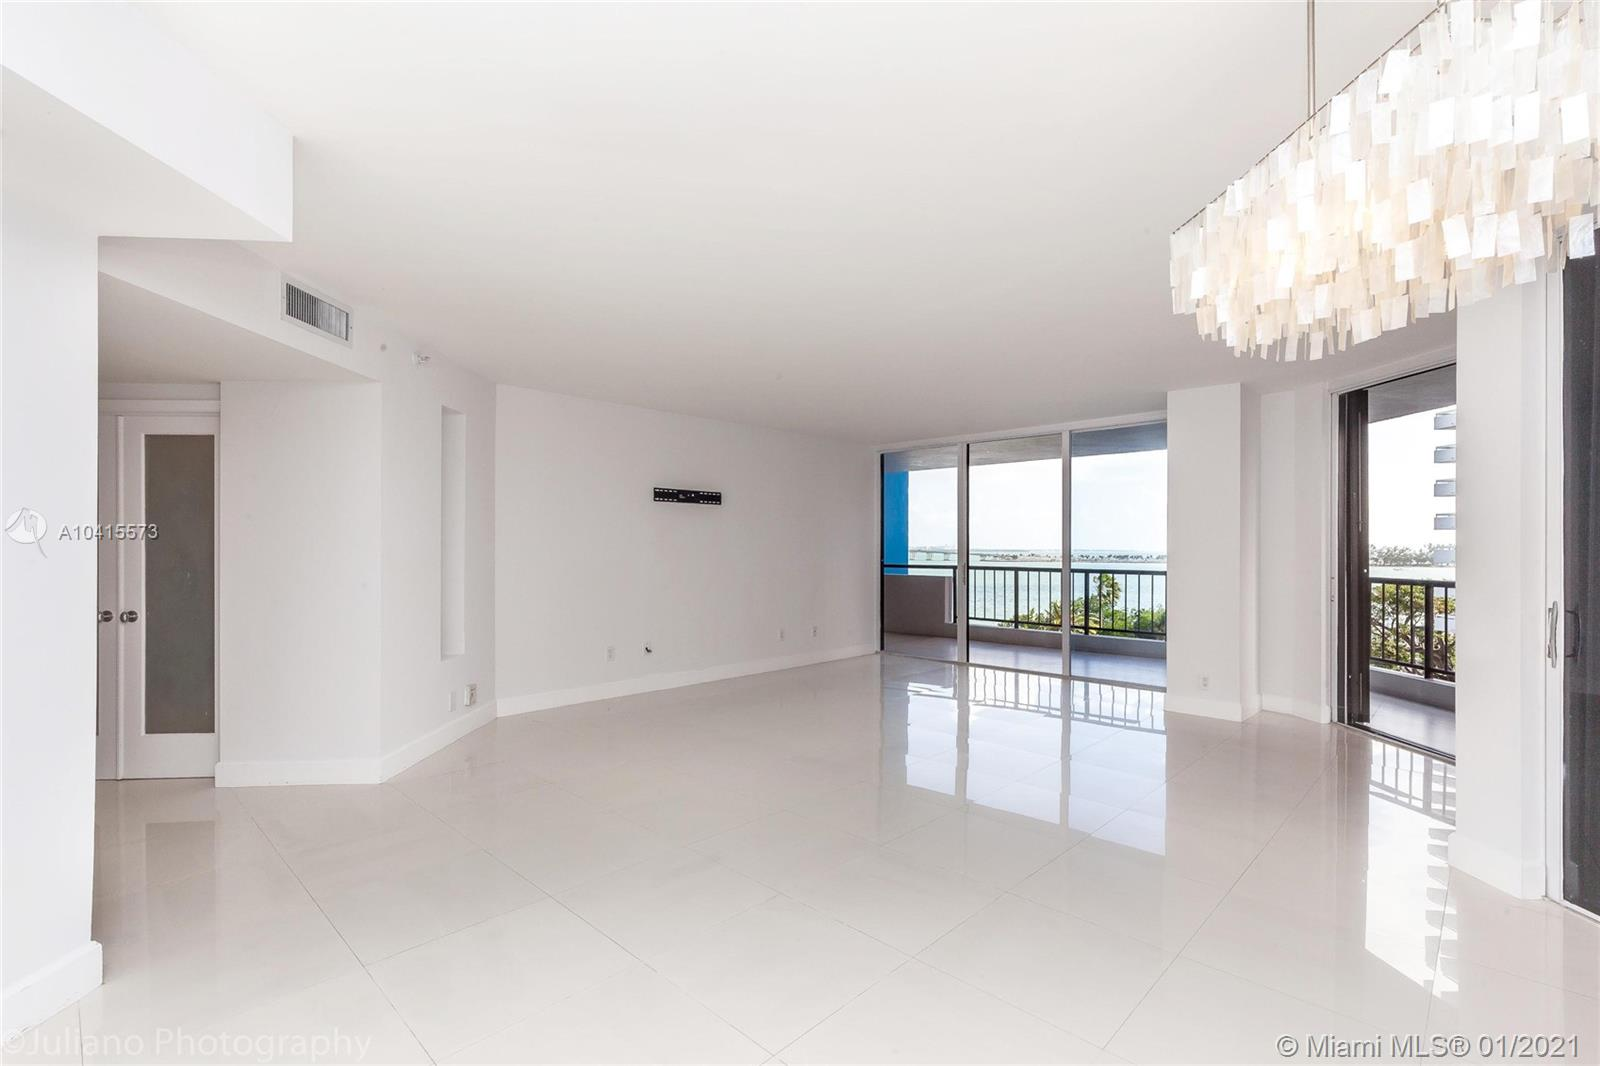 BEAUTIFUL REMODELED UNIT WITH SPECTACULAR BAY VIEW. DEN HAS BEEN CONVERTED TO POSSIBLE 3rd BEDROOM WITH ITS OWN BATHROOM, MAKING IT A 3BED/3BATH UNIT. TILE FLOORS THROUGHOUT, GRANITE COUNTERTOPS, BUILT IN CUSTOM CLOSETS, WINDOW TREATMENTS ON BEDROOMS. VERY SECURE AND WELL MAINTAINED BUILDING WITH GREAT AMENITIES, INCLUDING STATE OF ART GYM, KIDS PLAYROOM, SPACIOUS ENTERTAINMENT ROOMS, BIKE ROOM, HEATED INFINITY POOL OVERLOOKING THE BAY AND MARINA WITH SLIPS AVAILABLE FOR SALE OR RENT